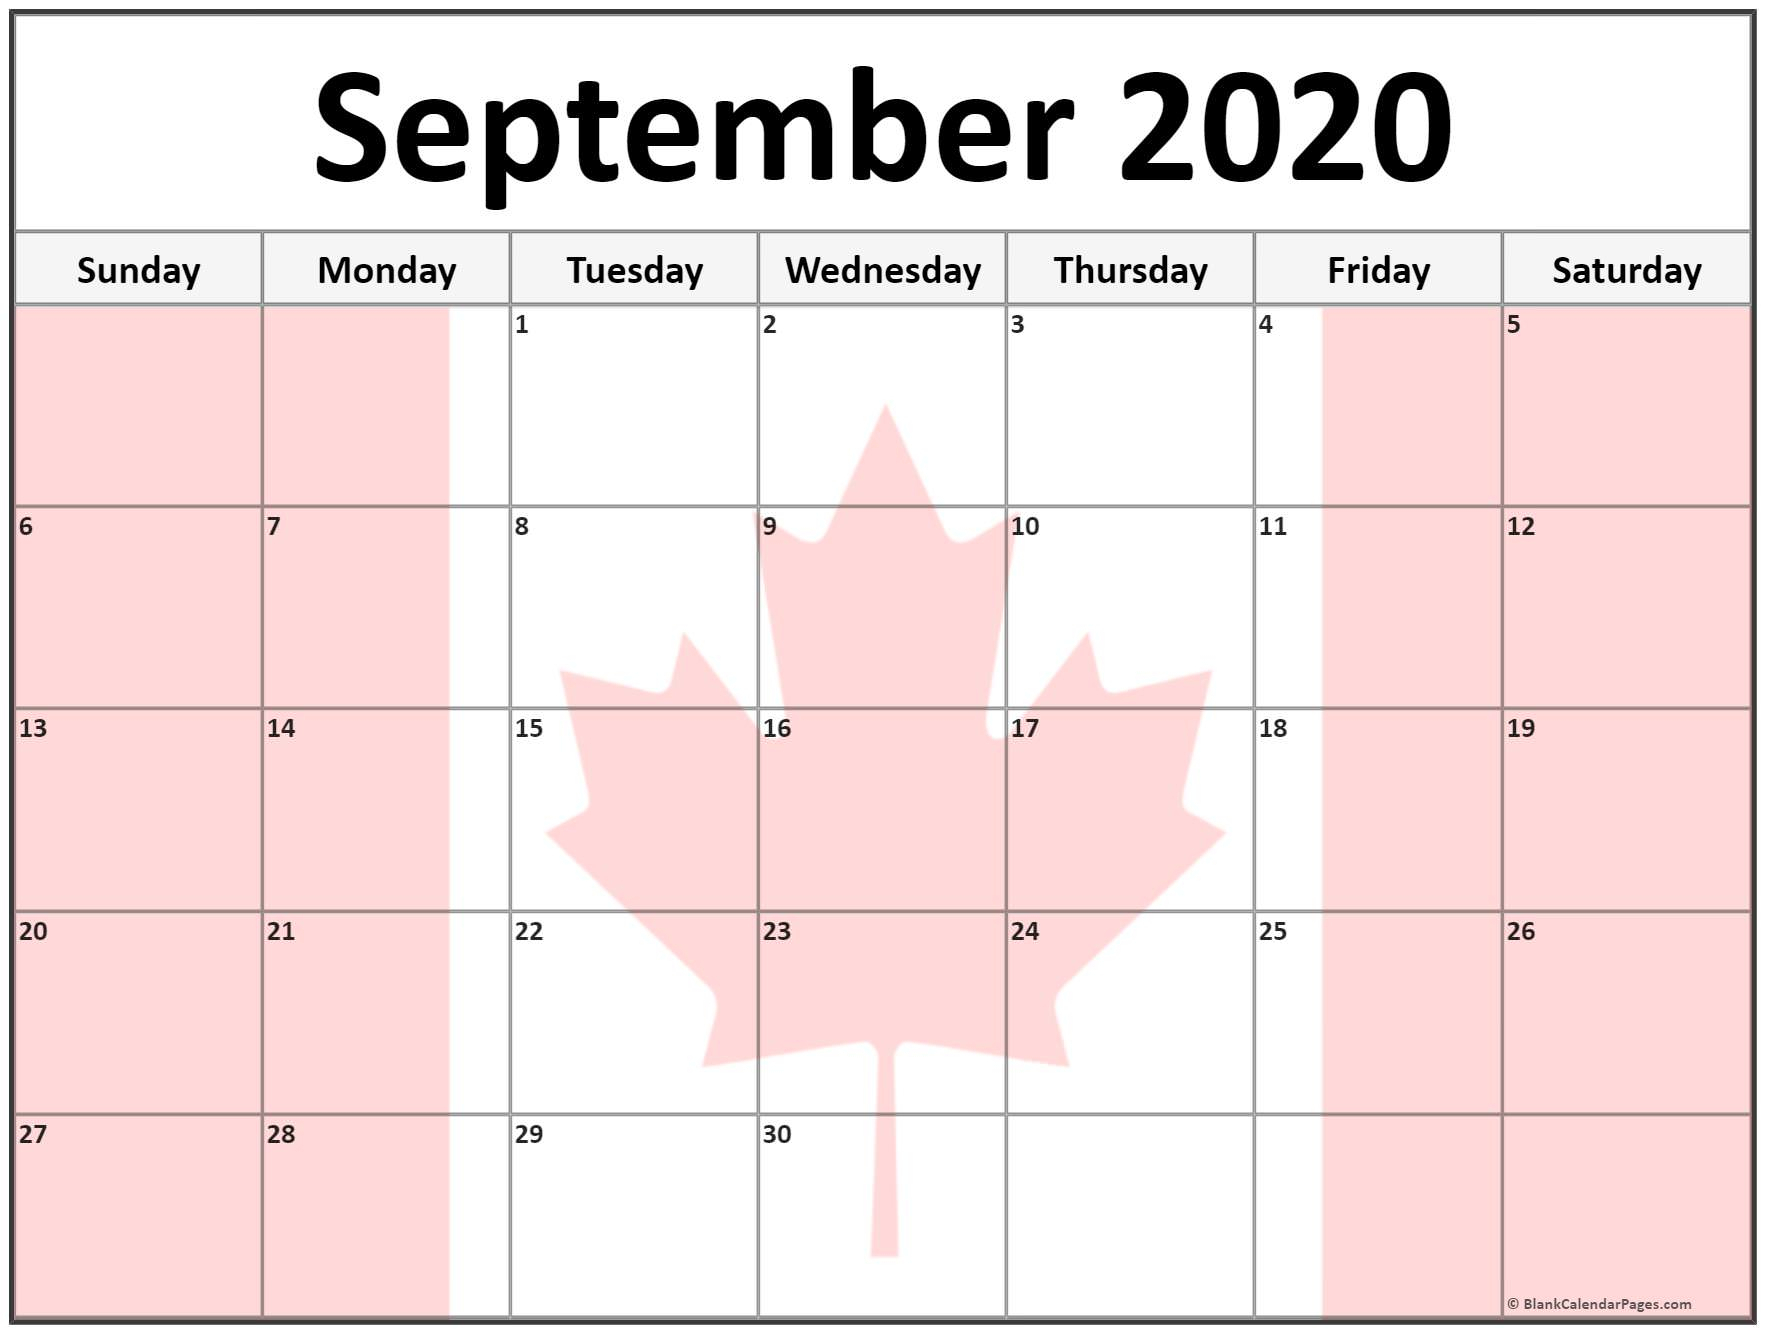 Collection Of September 2020 Photo Calendars With Image Filters.